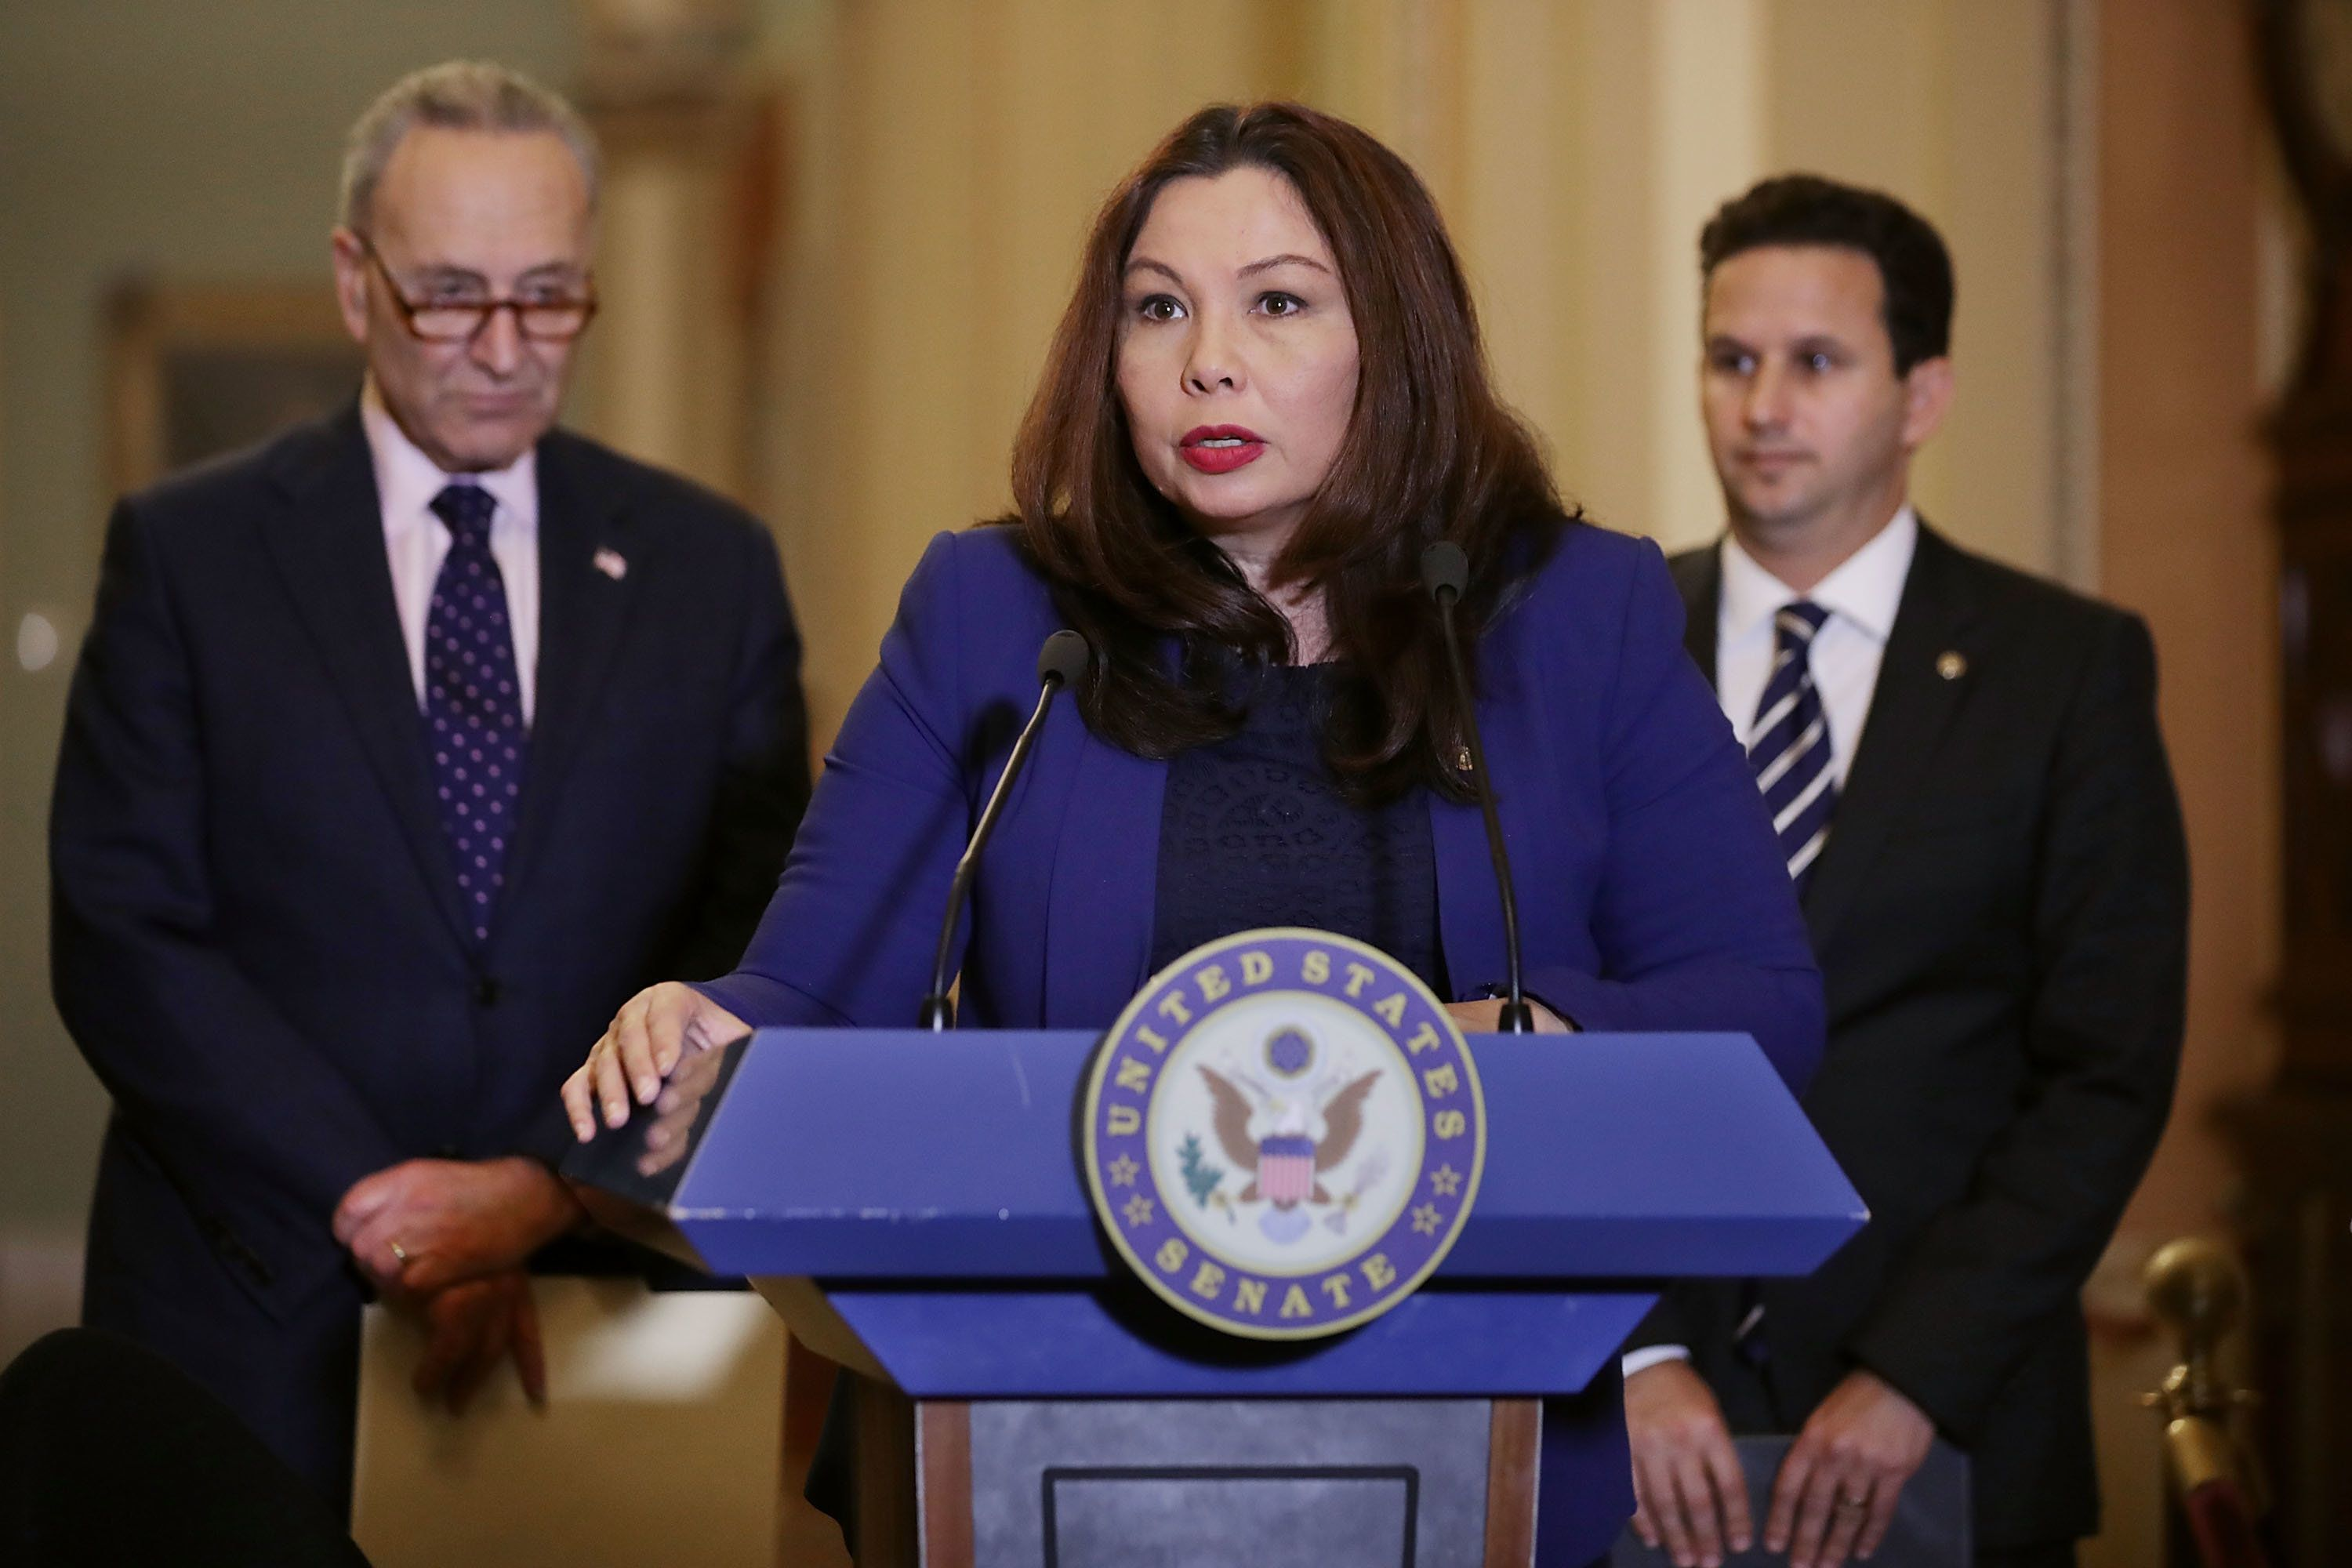 Duckworth, after giving birth, proposes change to allow babies on Senate floor